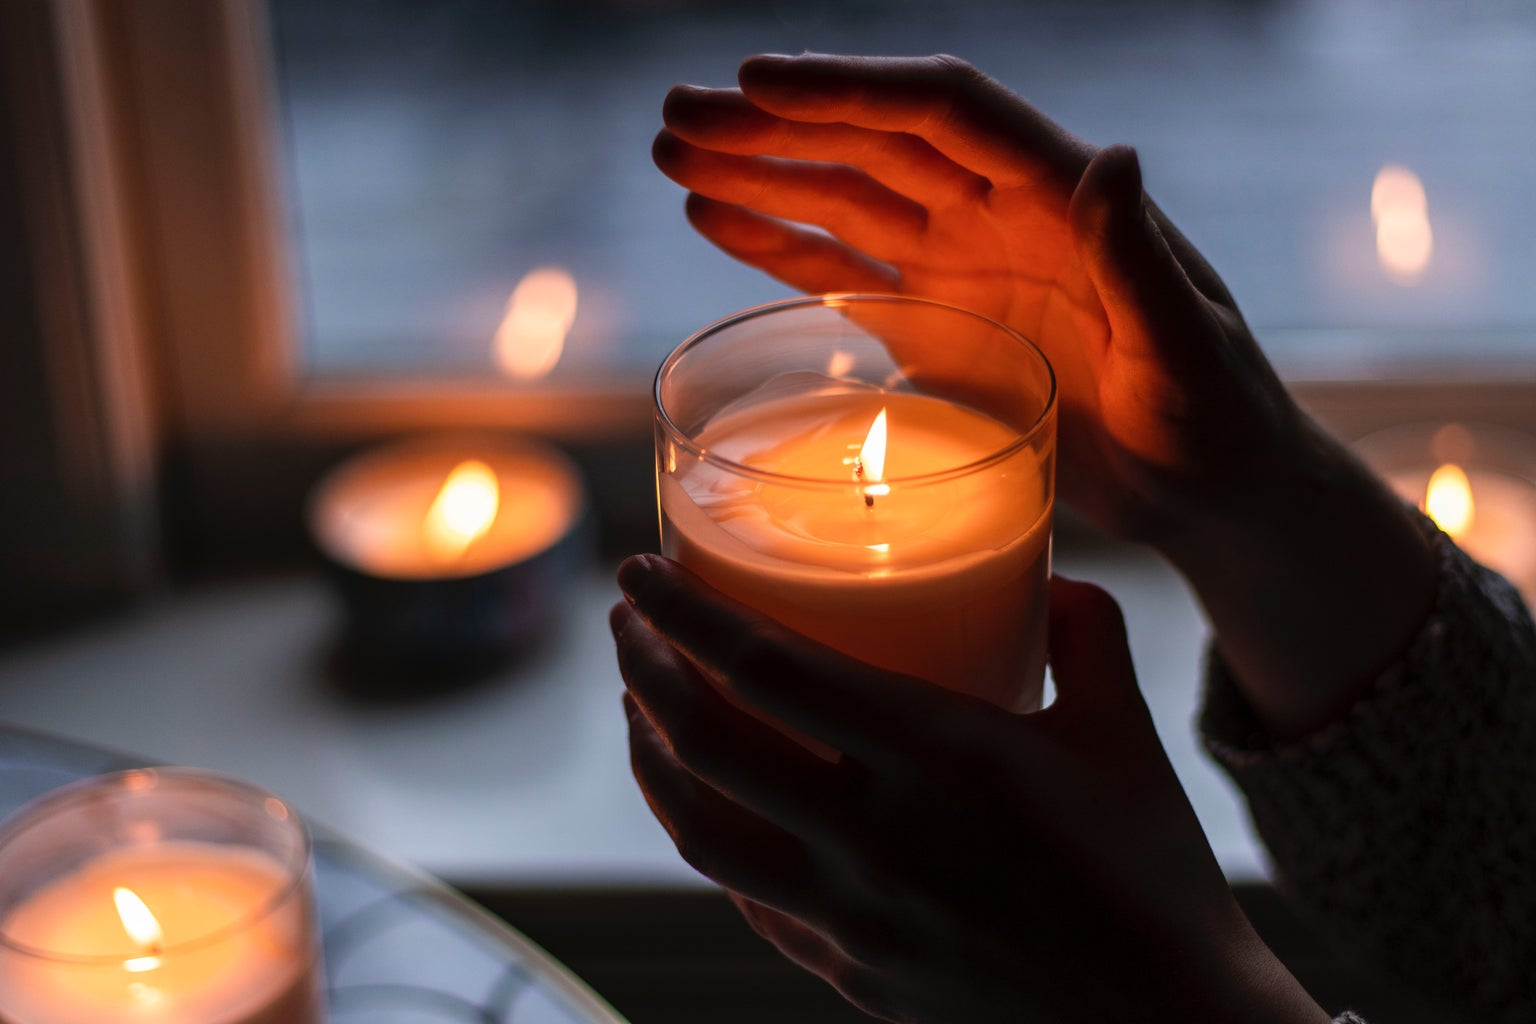 A woman\'s hand holding a burning candle